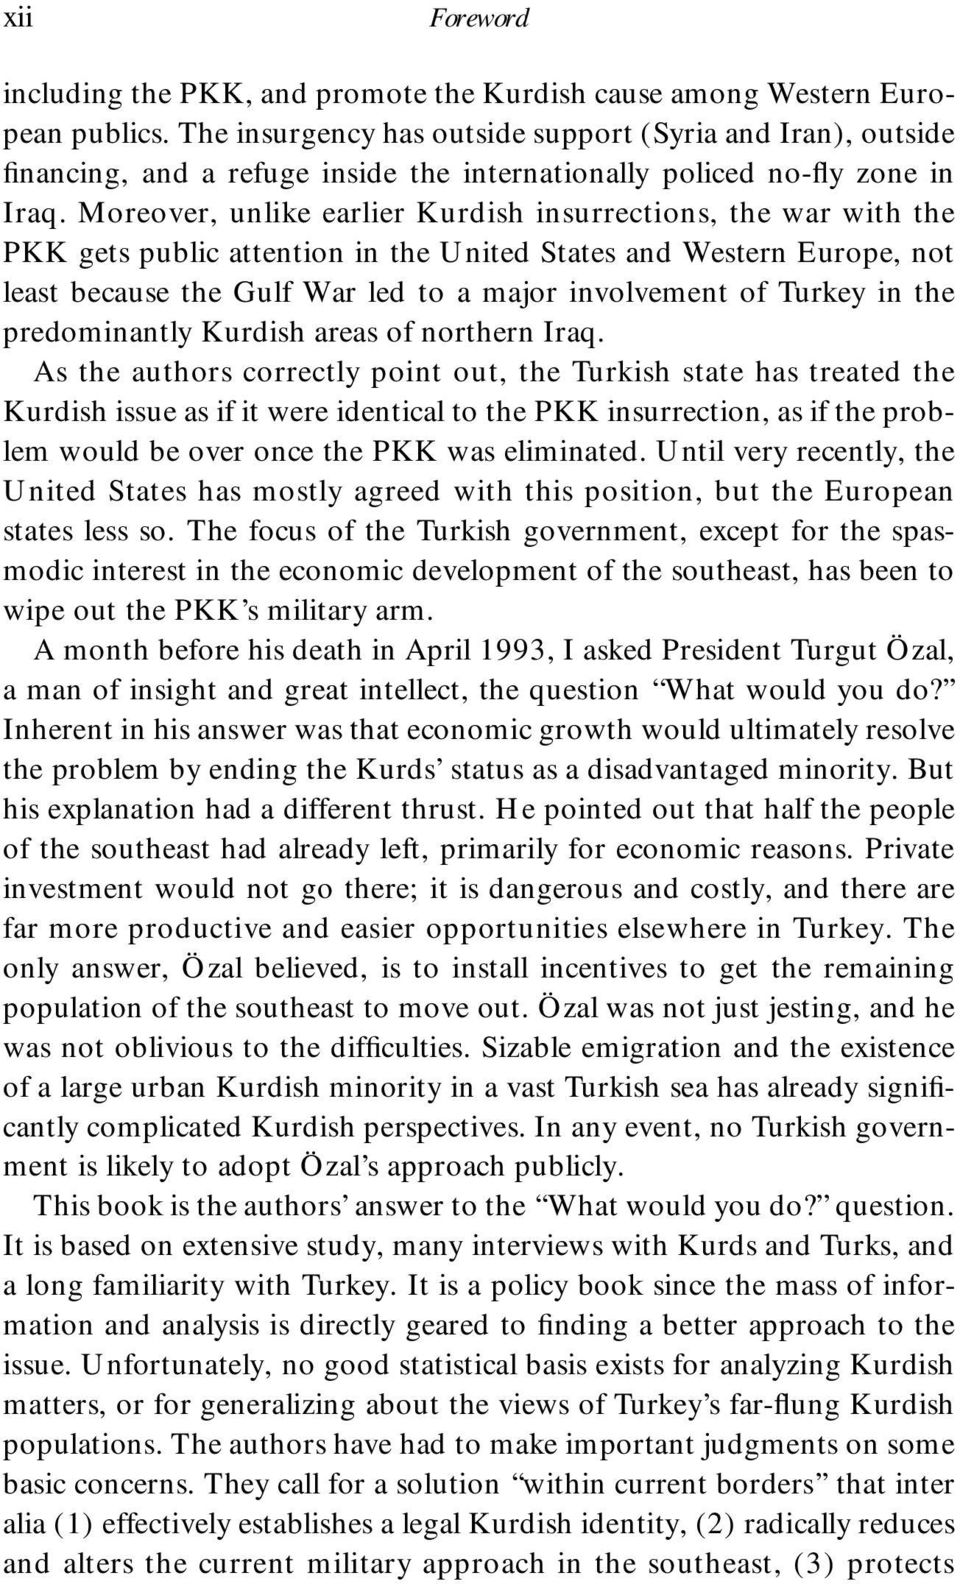 Moreover, unlike earlier Kurdish insurrections, the war with the PKK gets public attention in the United States and Western Europe, not least because the Gulf War led to a major involvement of Turkey